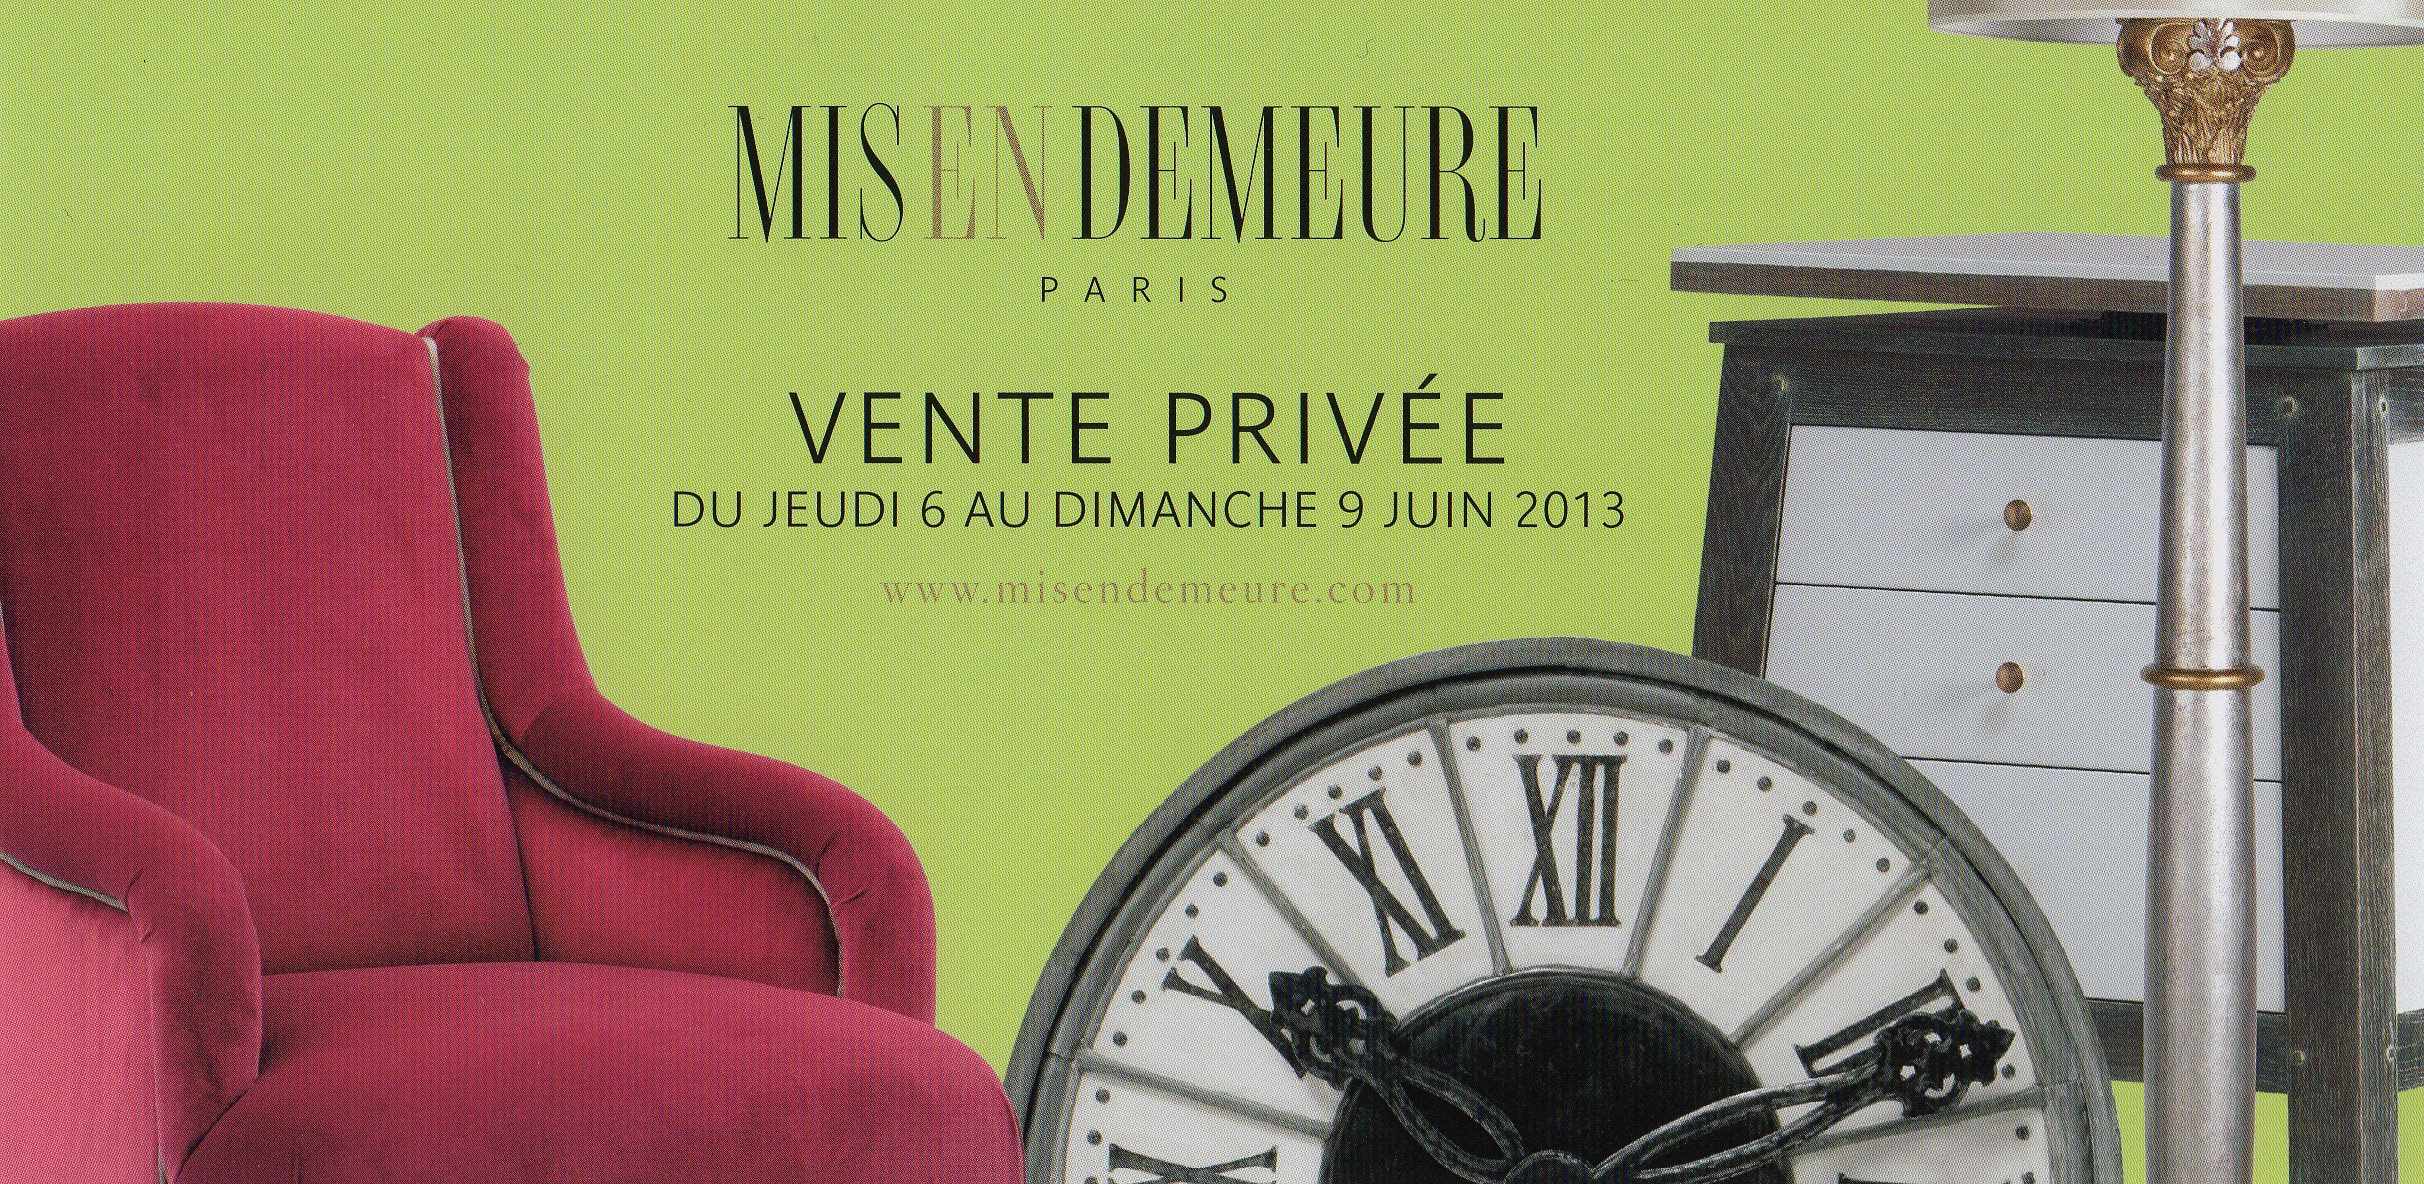 Vente priv e meubles archives le blog d co de mlc - Vente privee ameublement ...